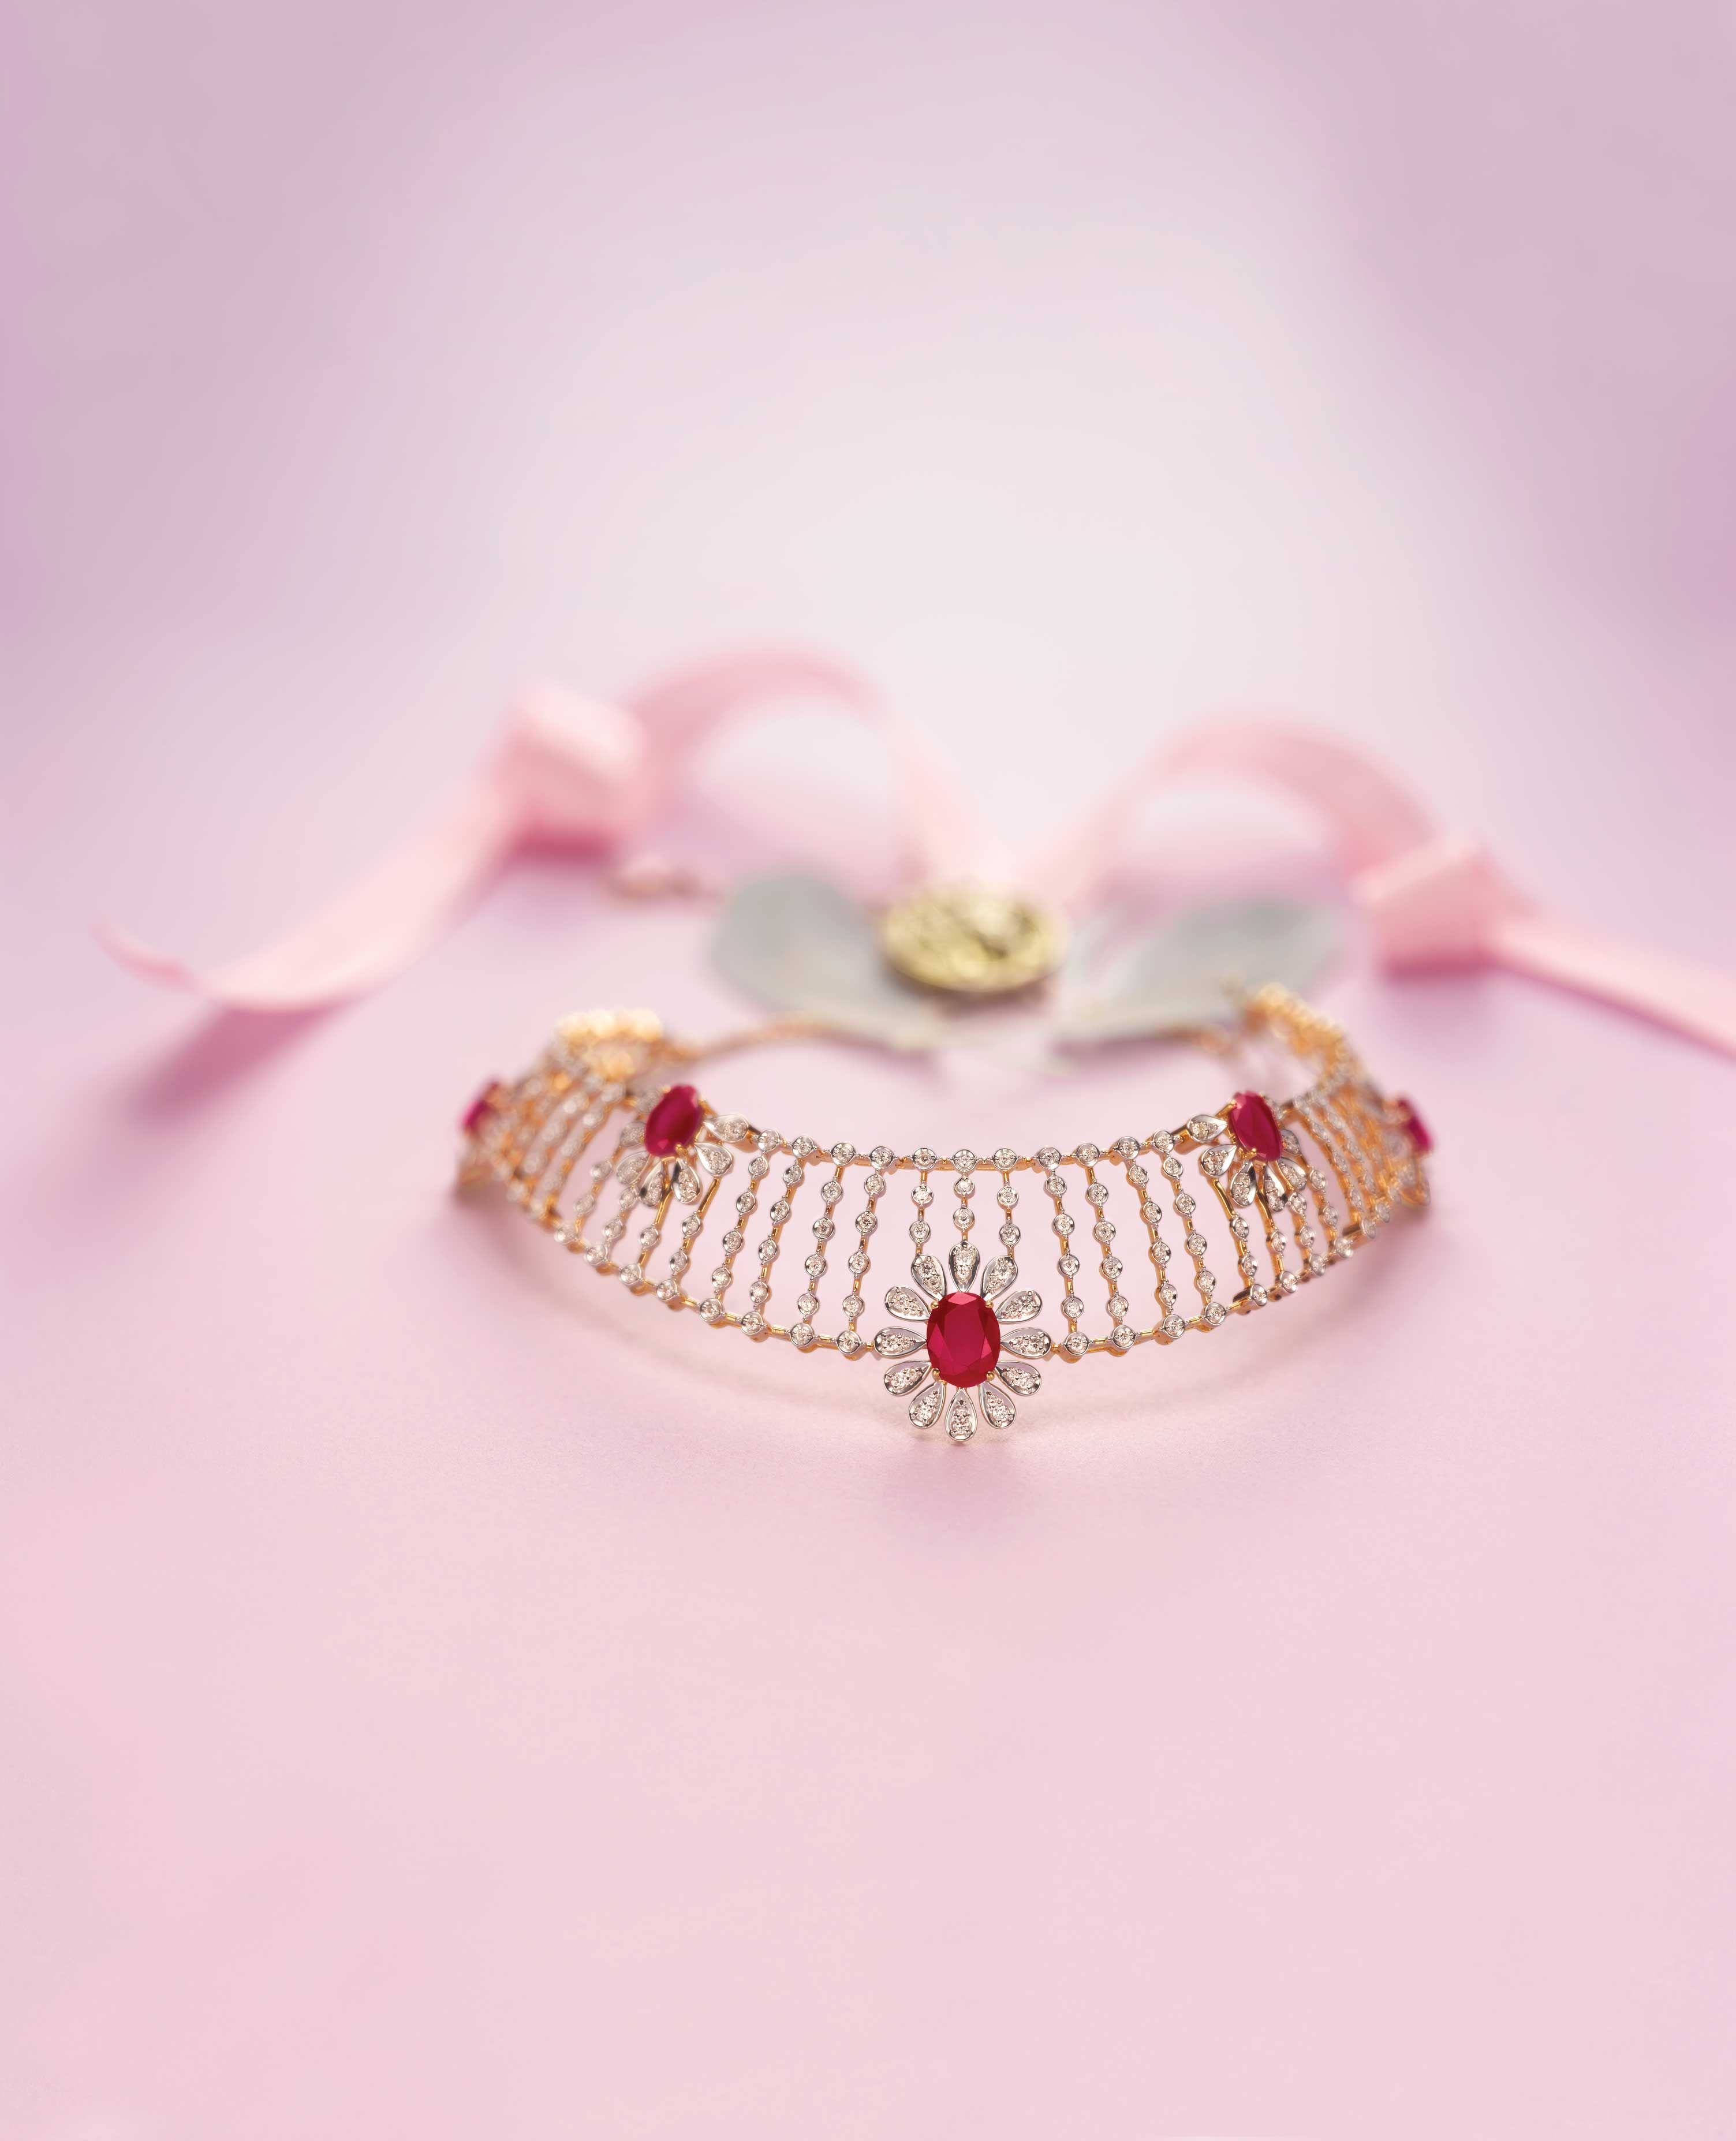 Pin by Shilparekha Patil on gold jewellery in 2018 | Pinterest ...